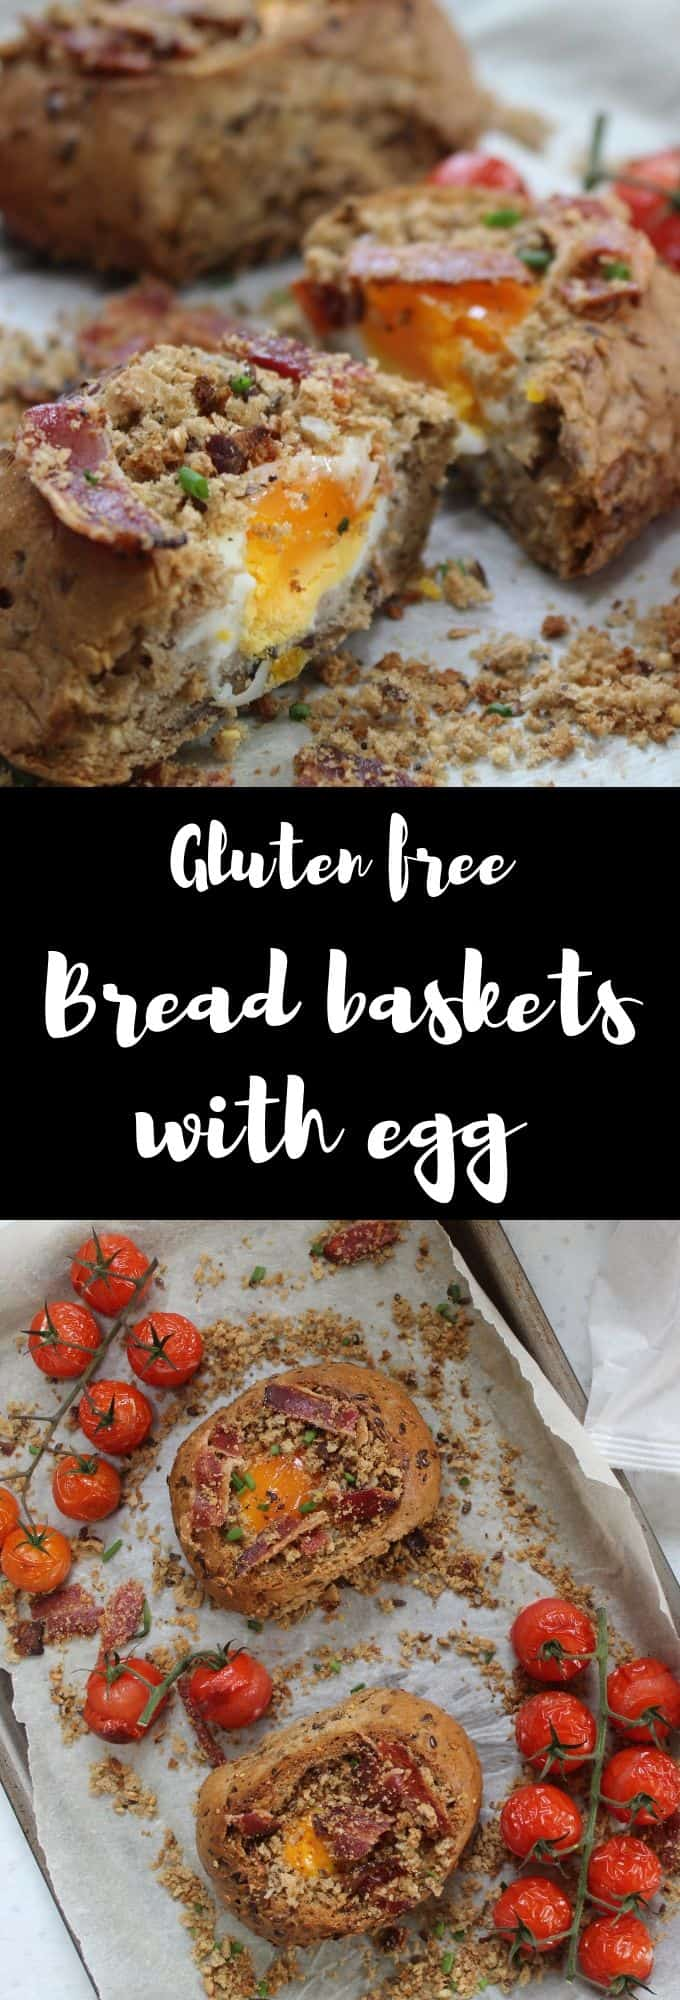 gluten free bread baskets with egg and bacon crumble brunch breakfast recipes